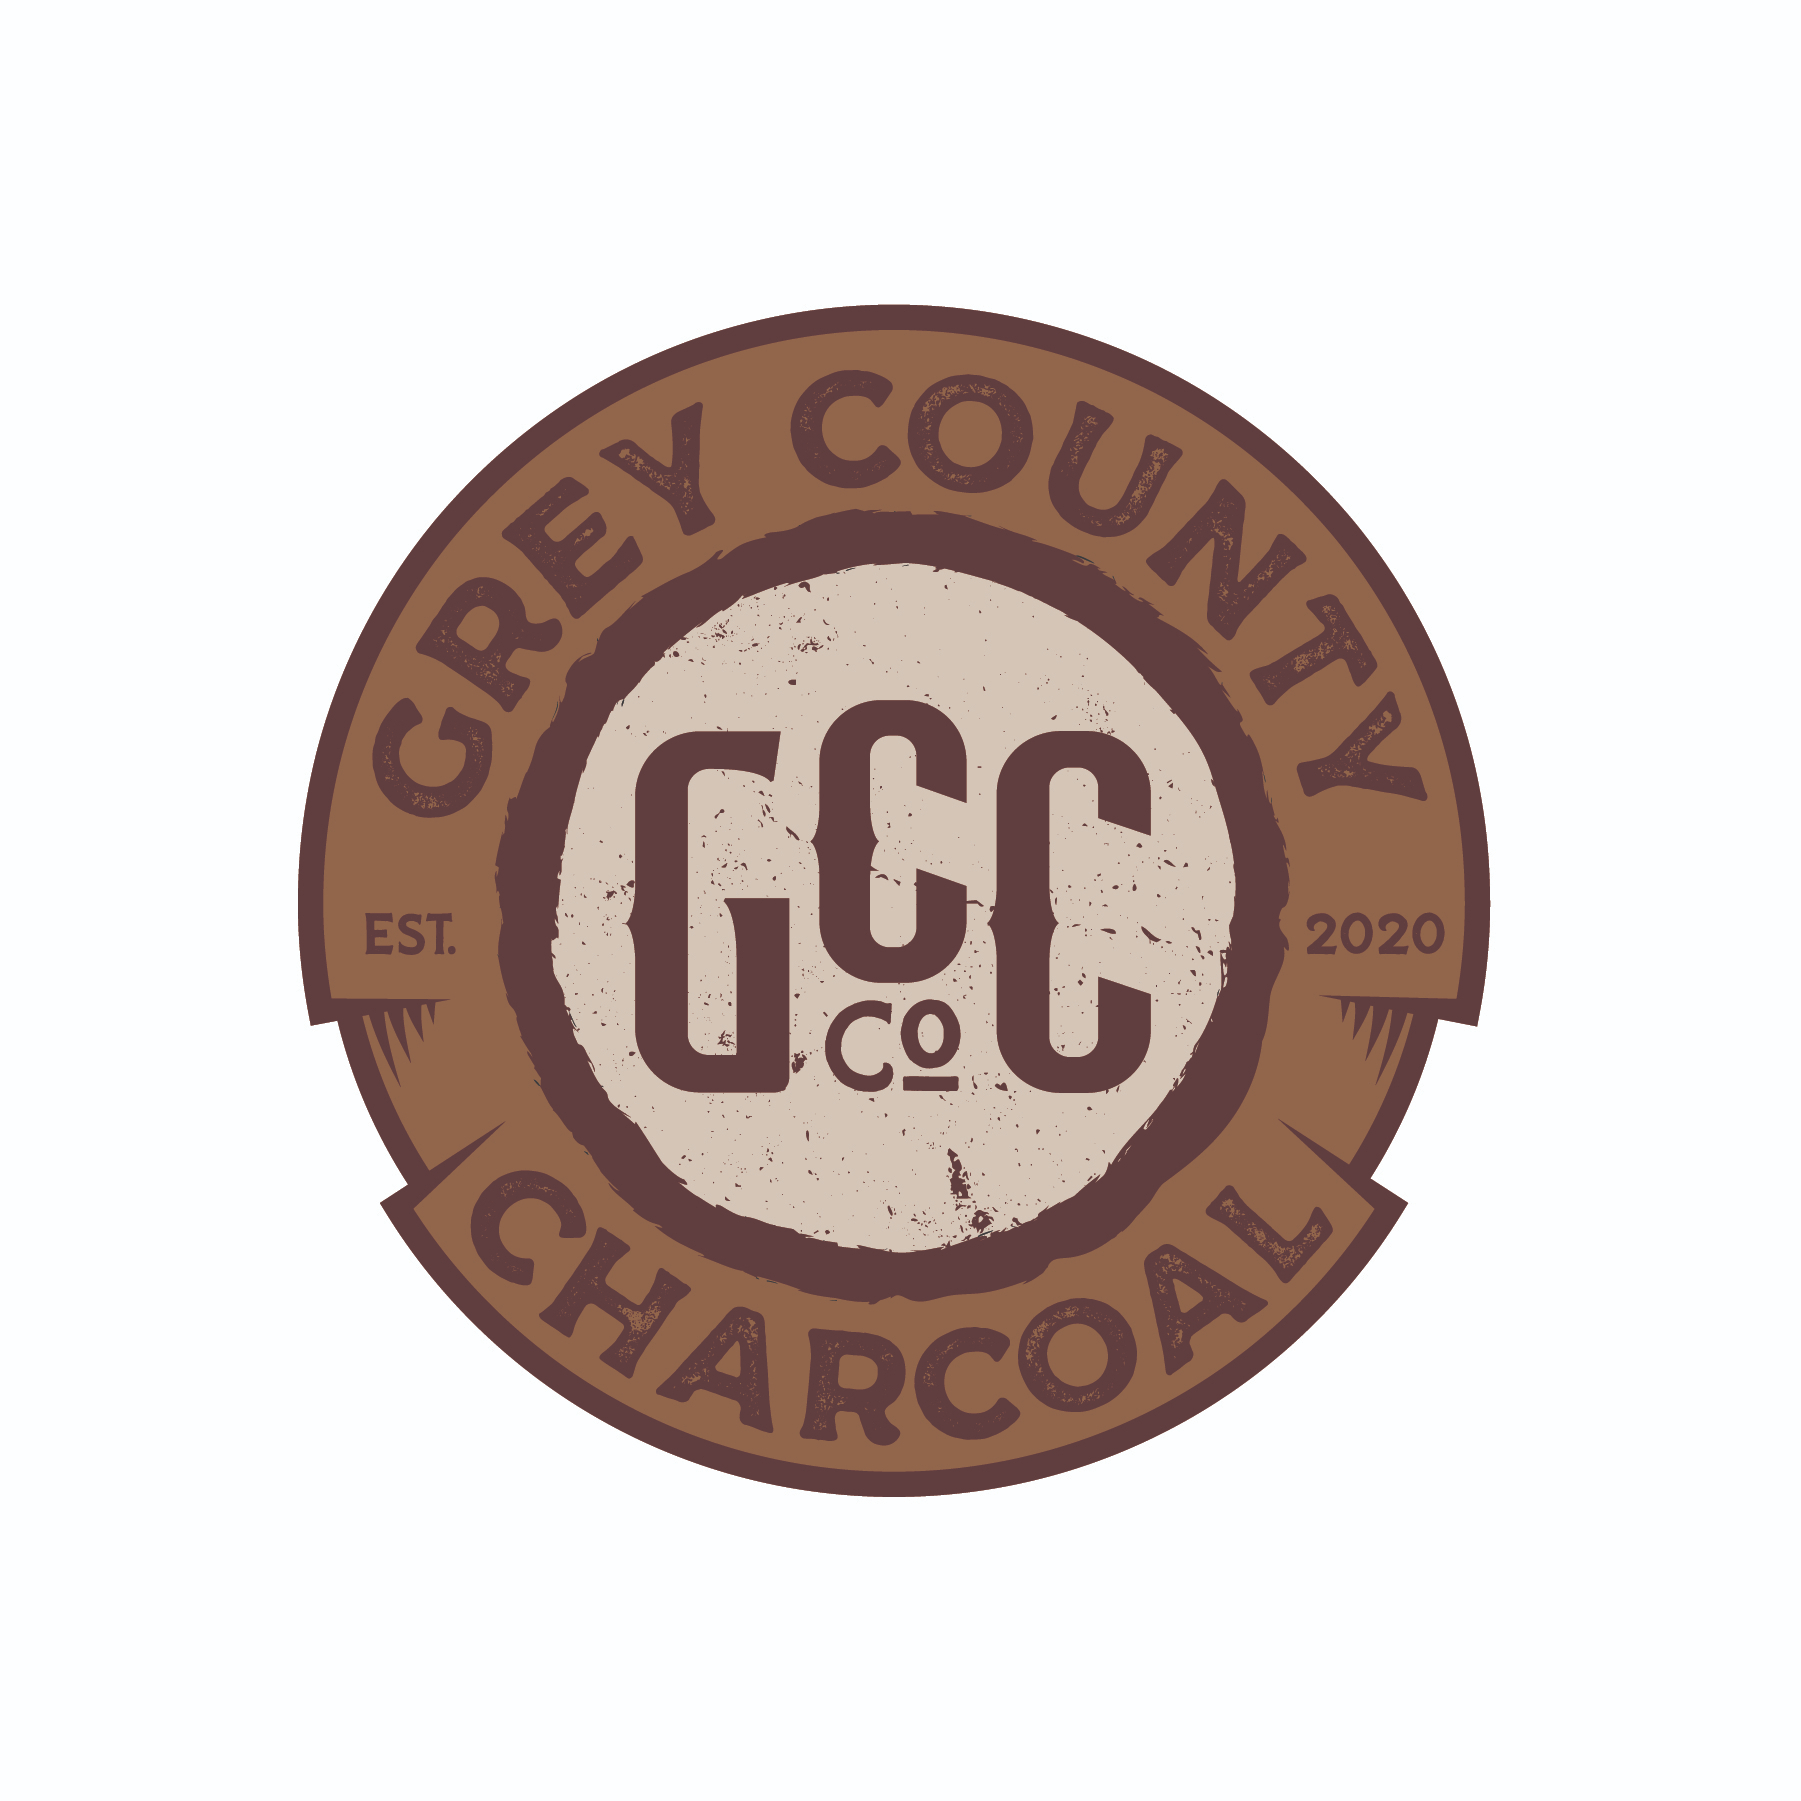 Grey County Charcoal Co